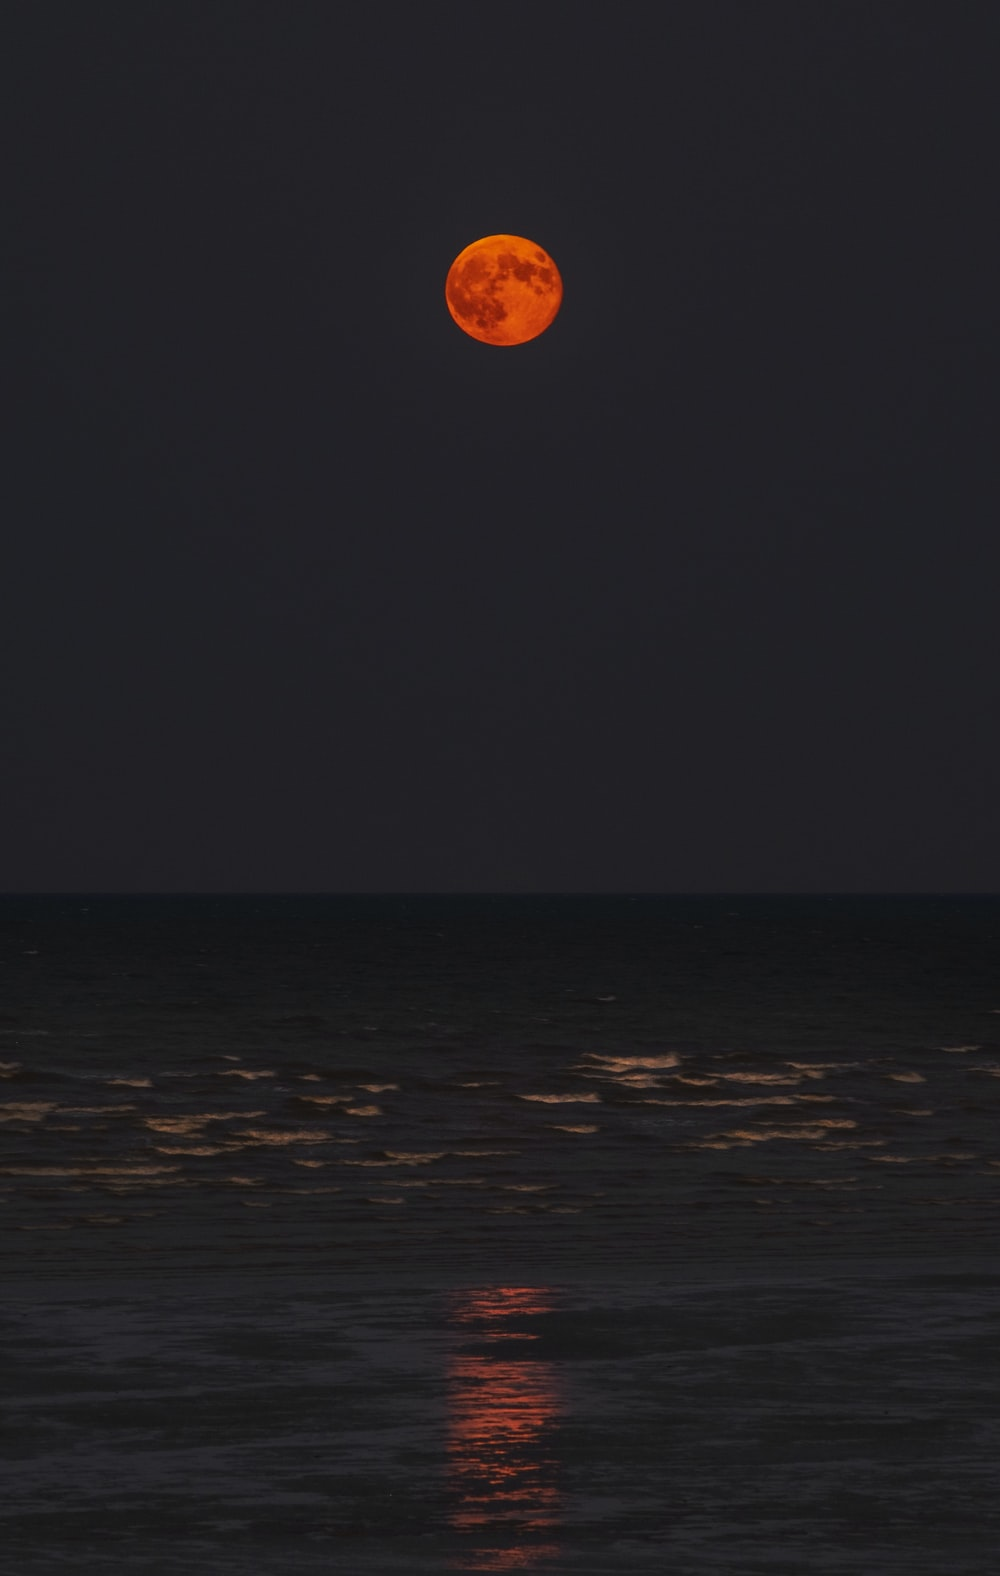 body of water during fullmoon